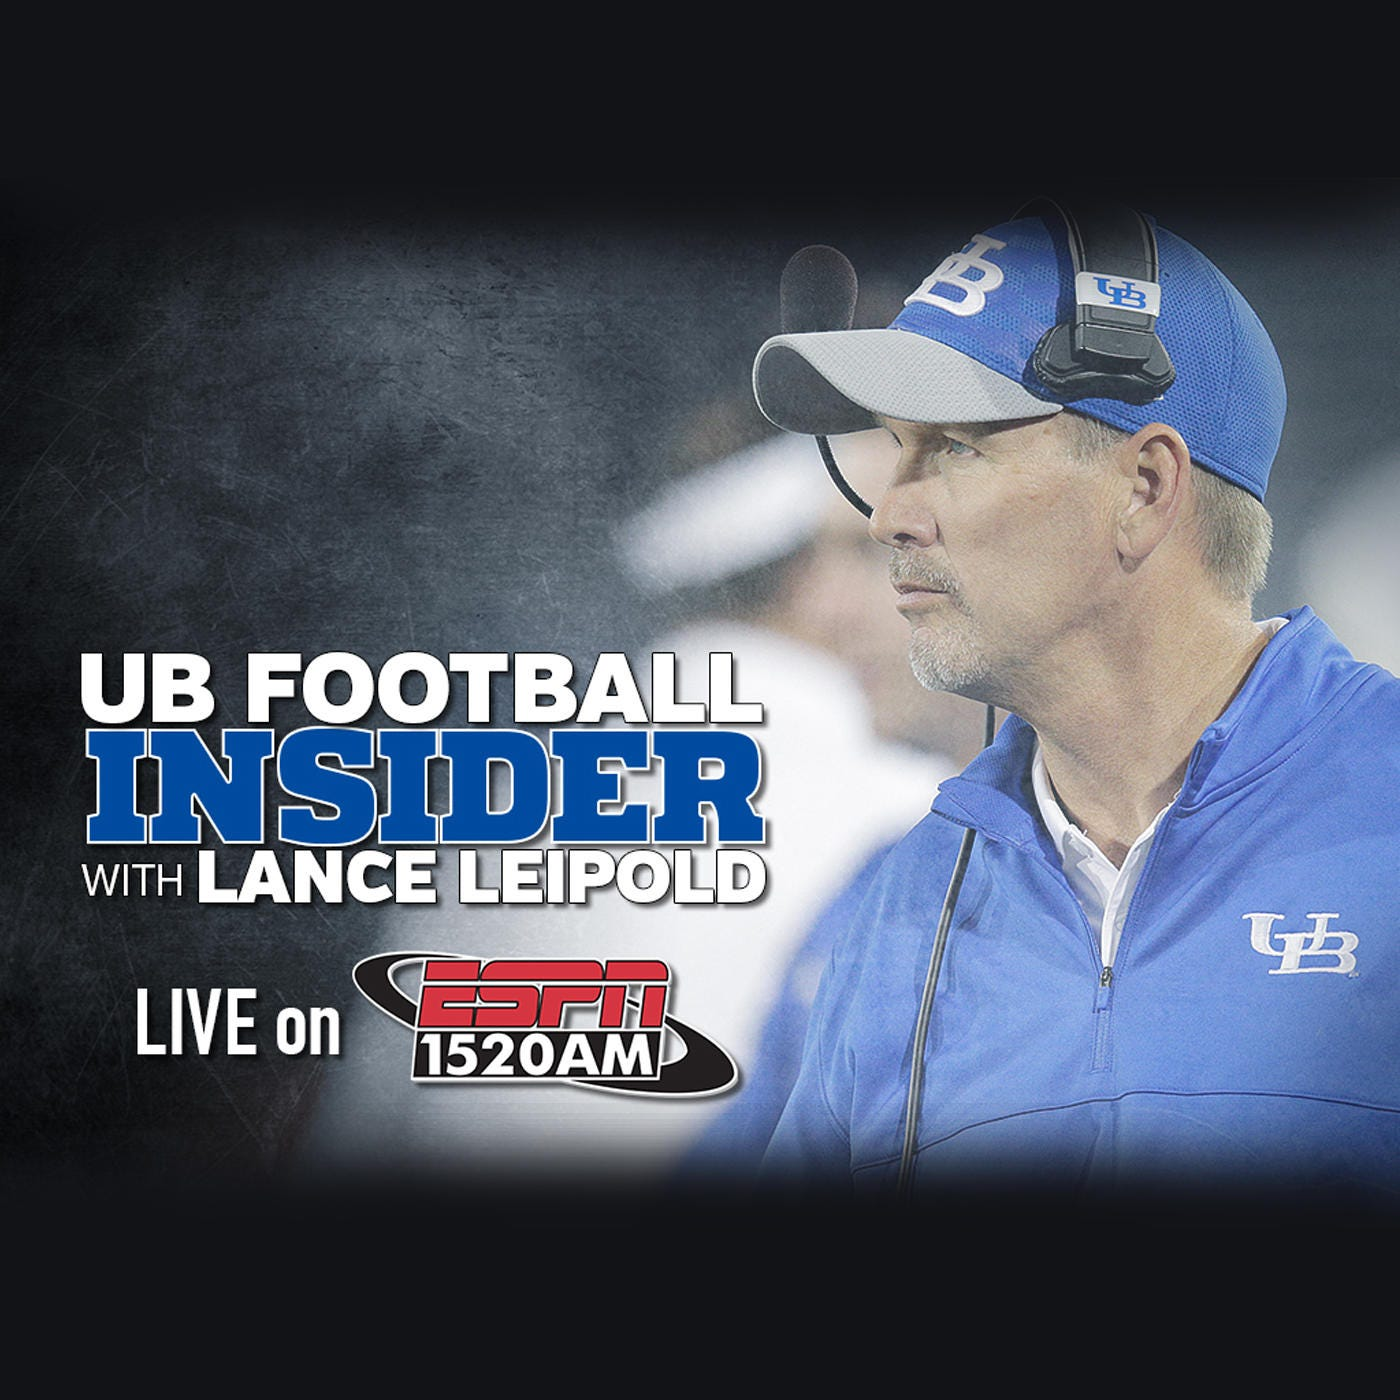 UB Football Insider with Lance Leipold